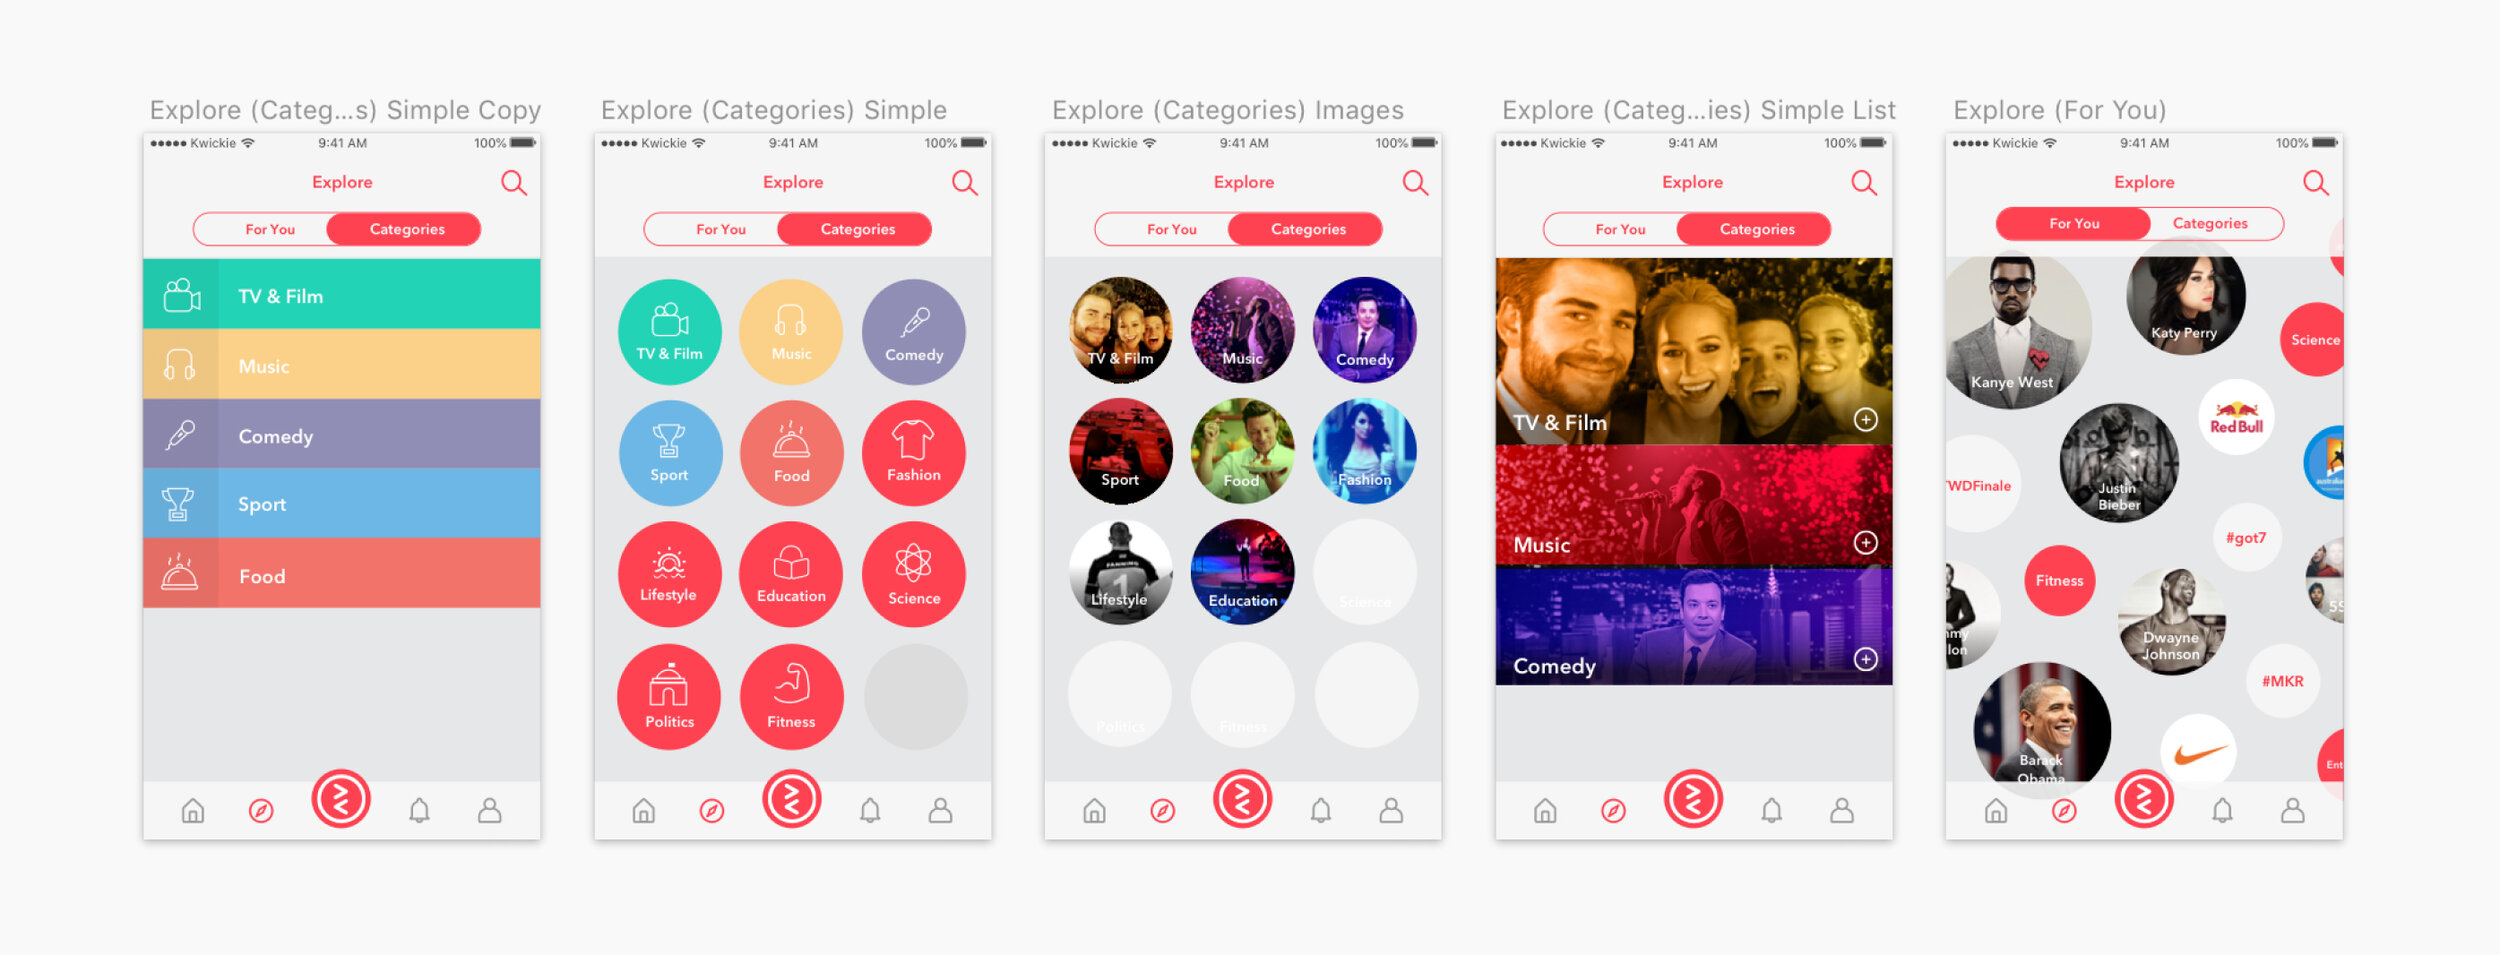 Concepts for the explore section of the app.